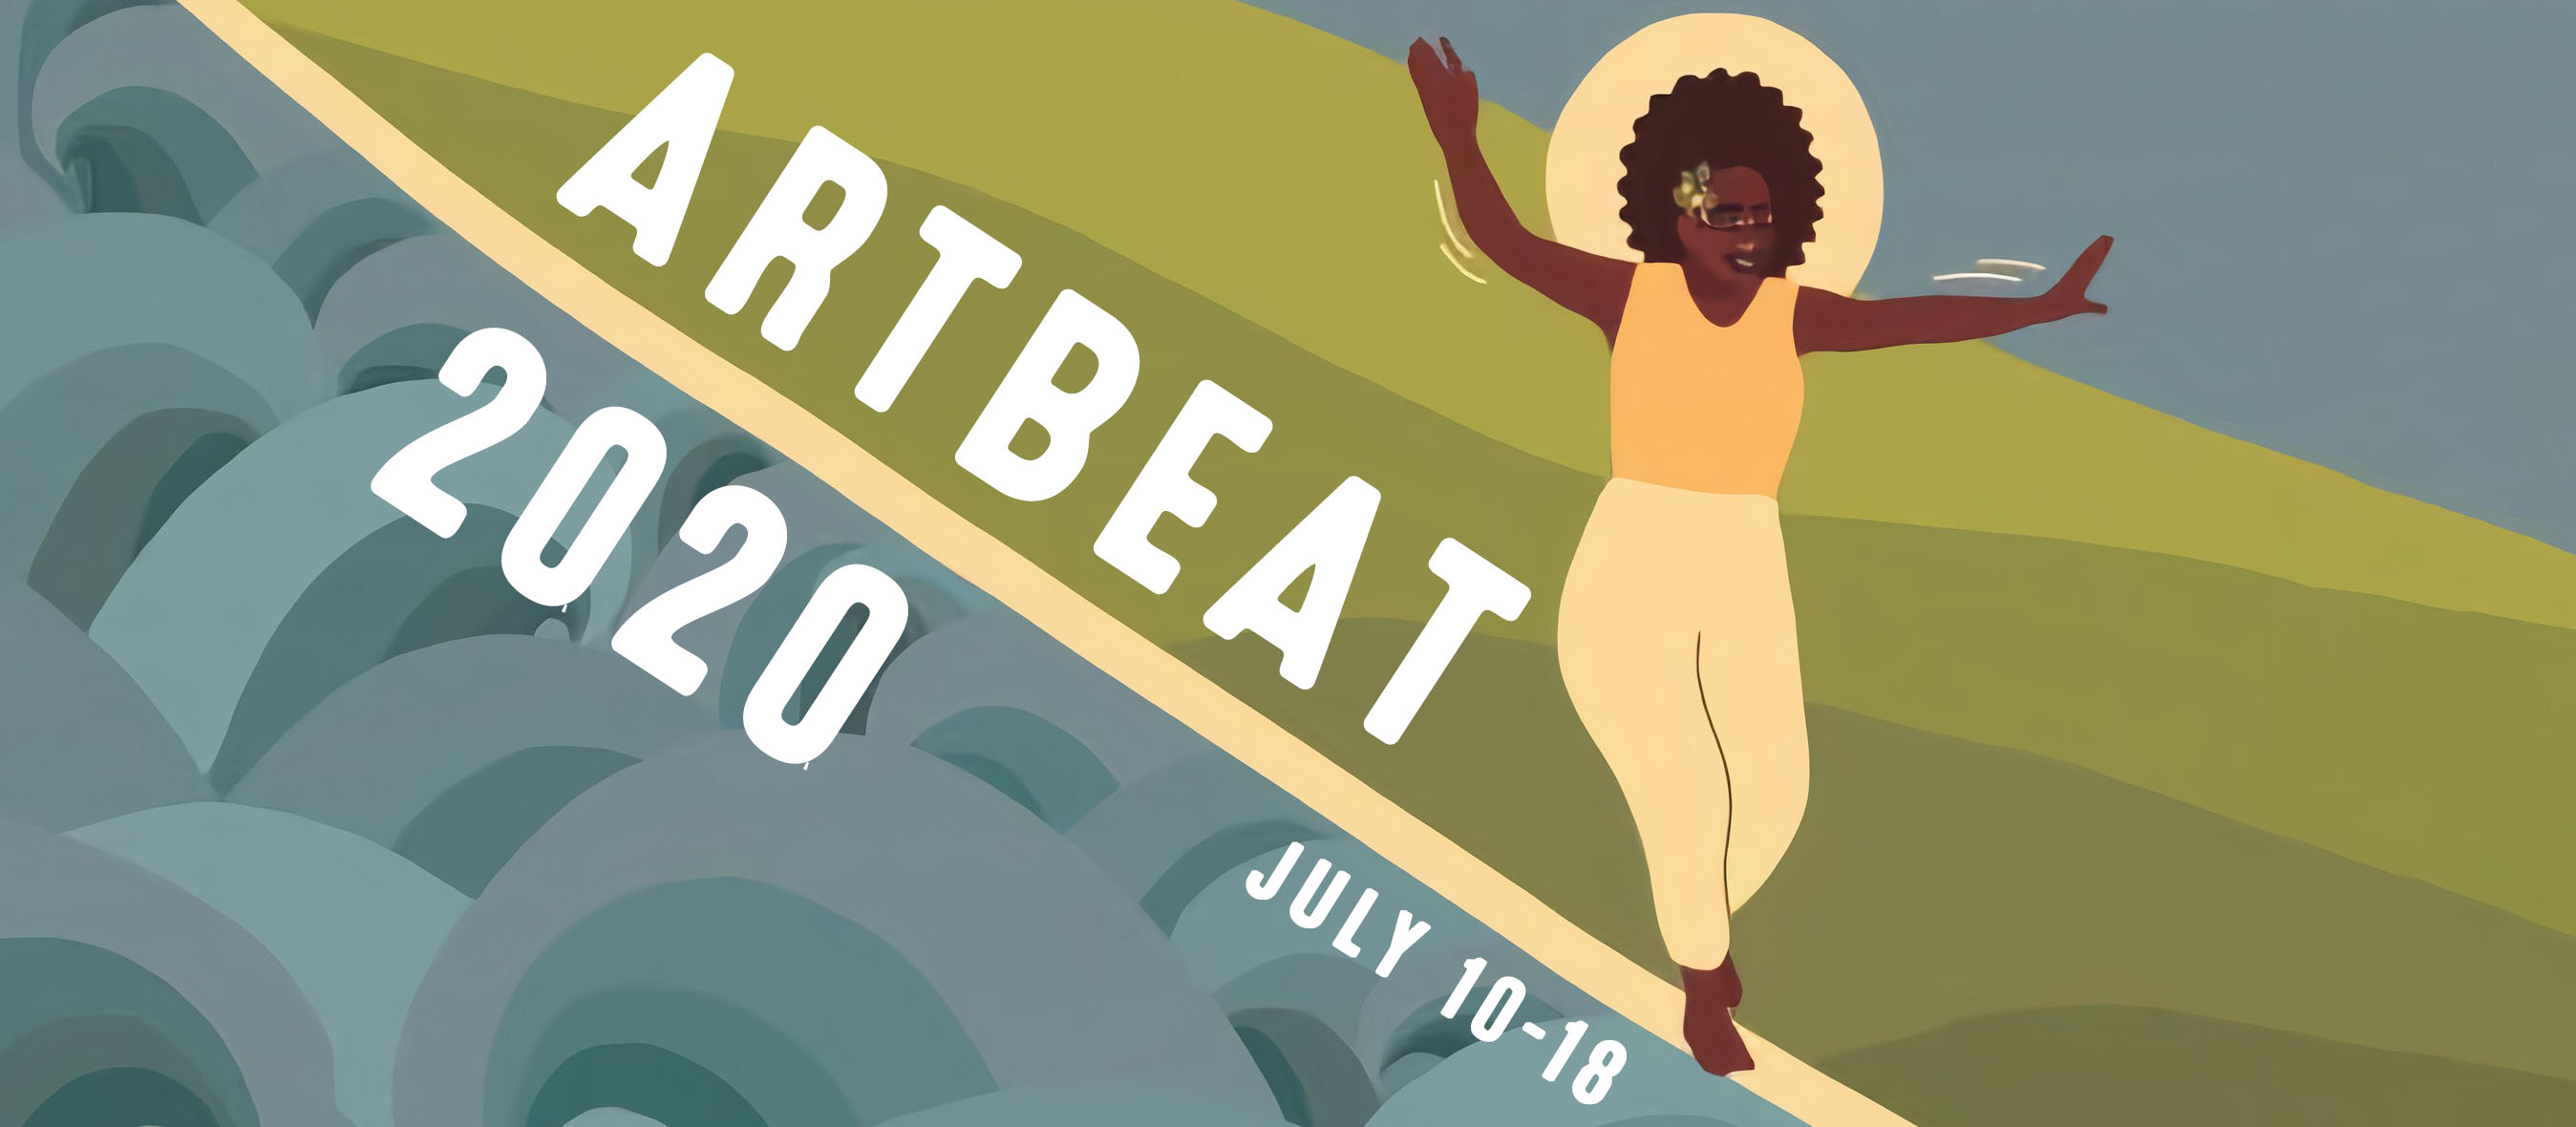 ArtBeat 2020: July 10-18